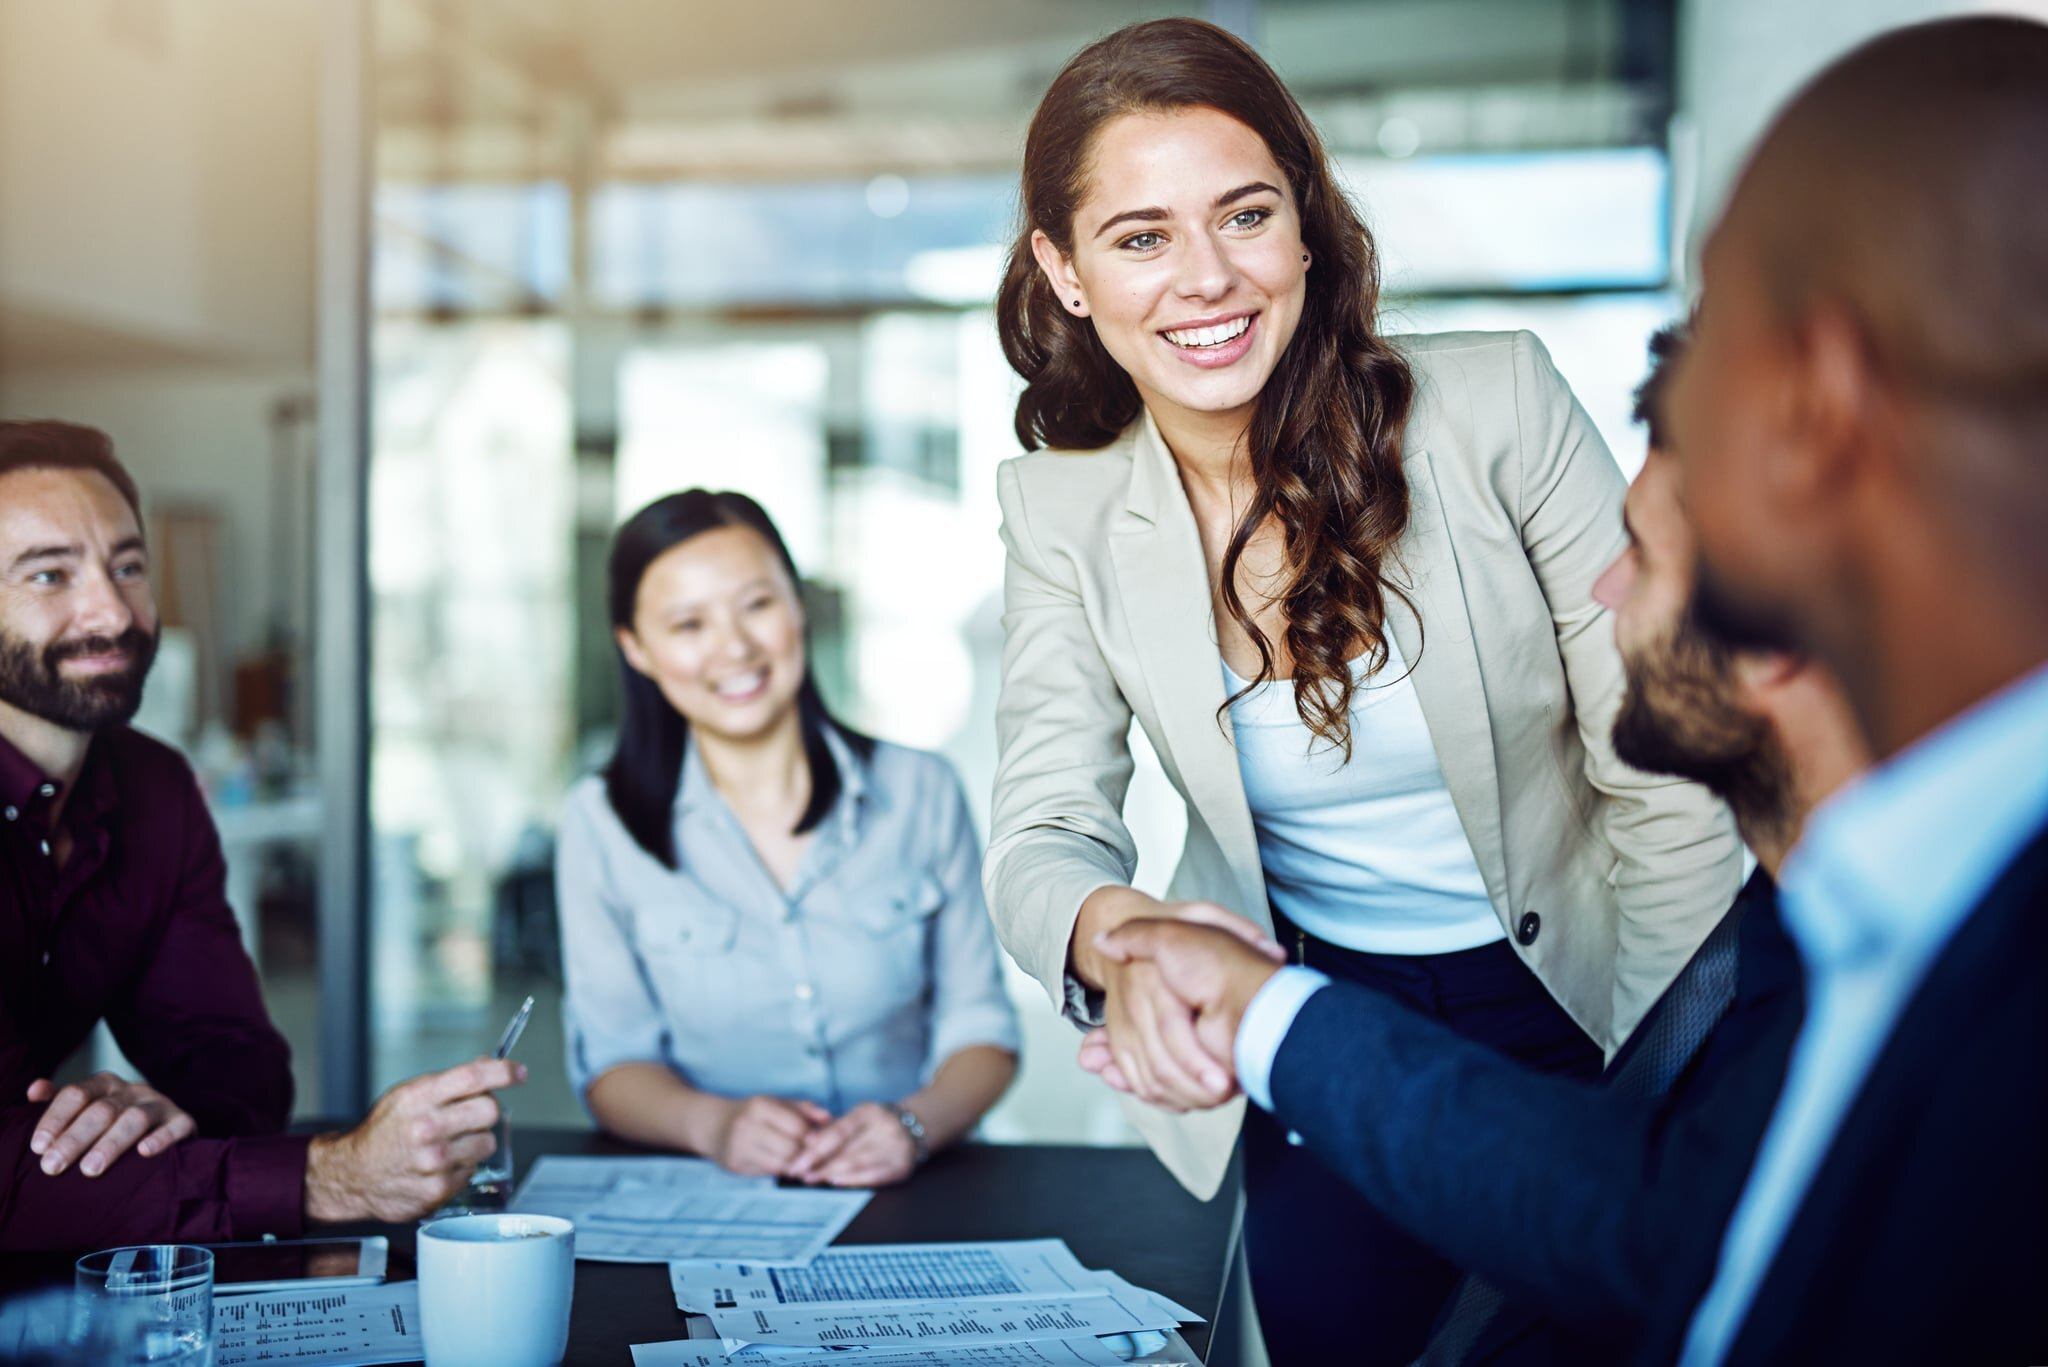 A new hire shouldn't be meeting with just one person the entire first day. -